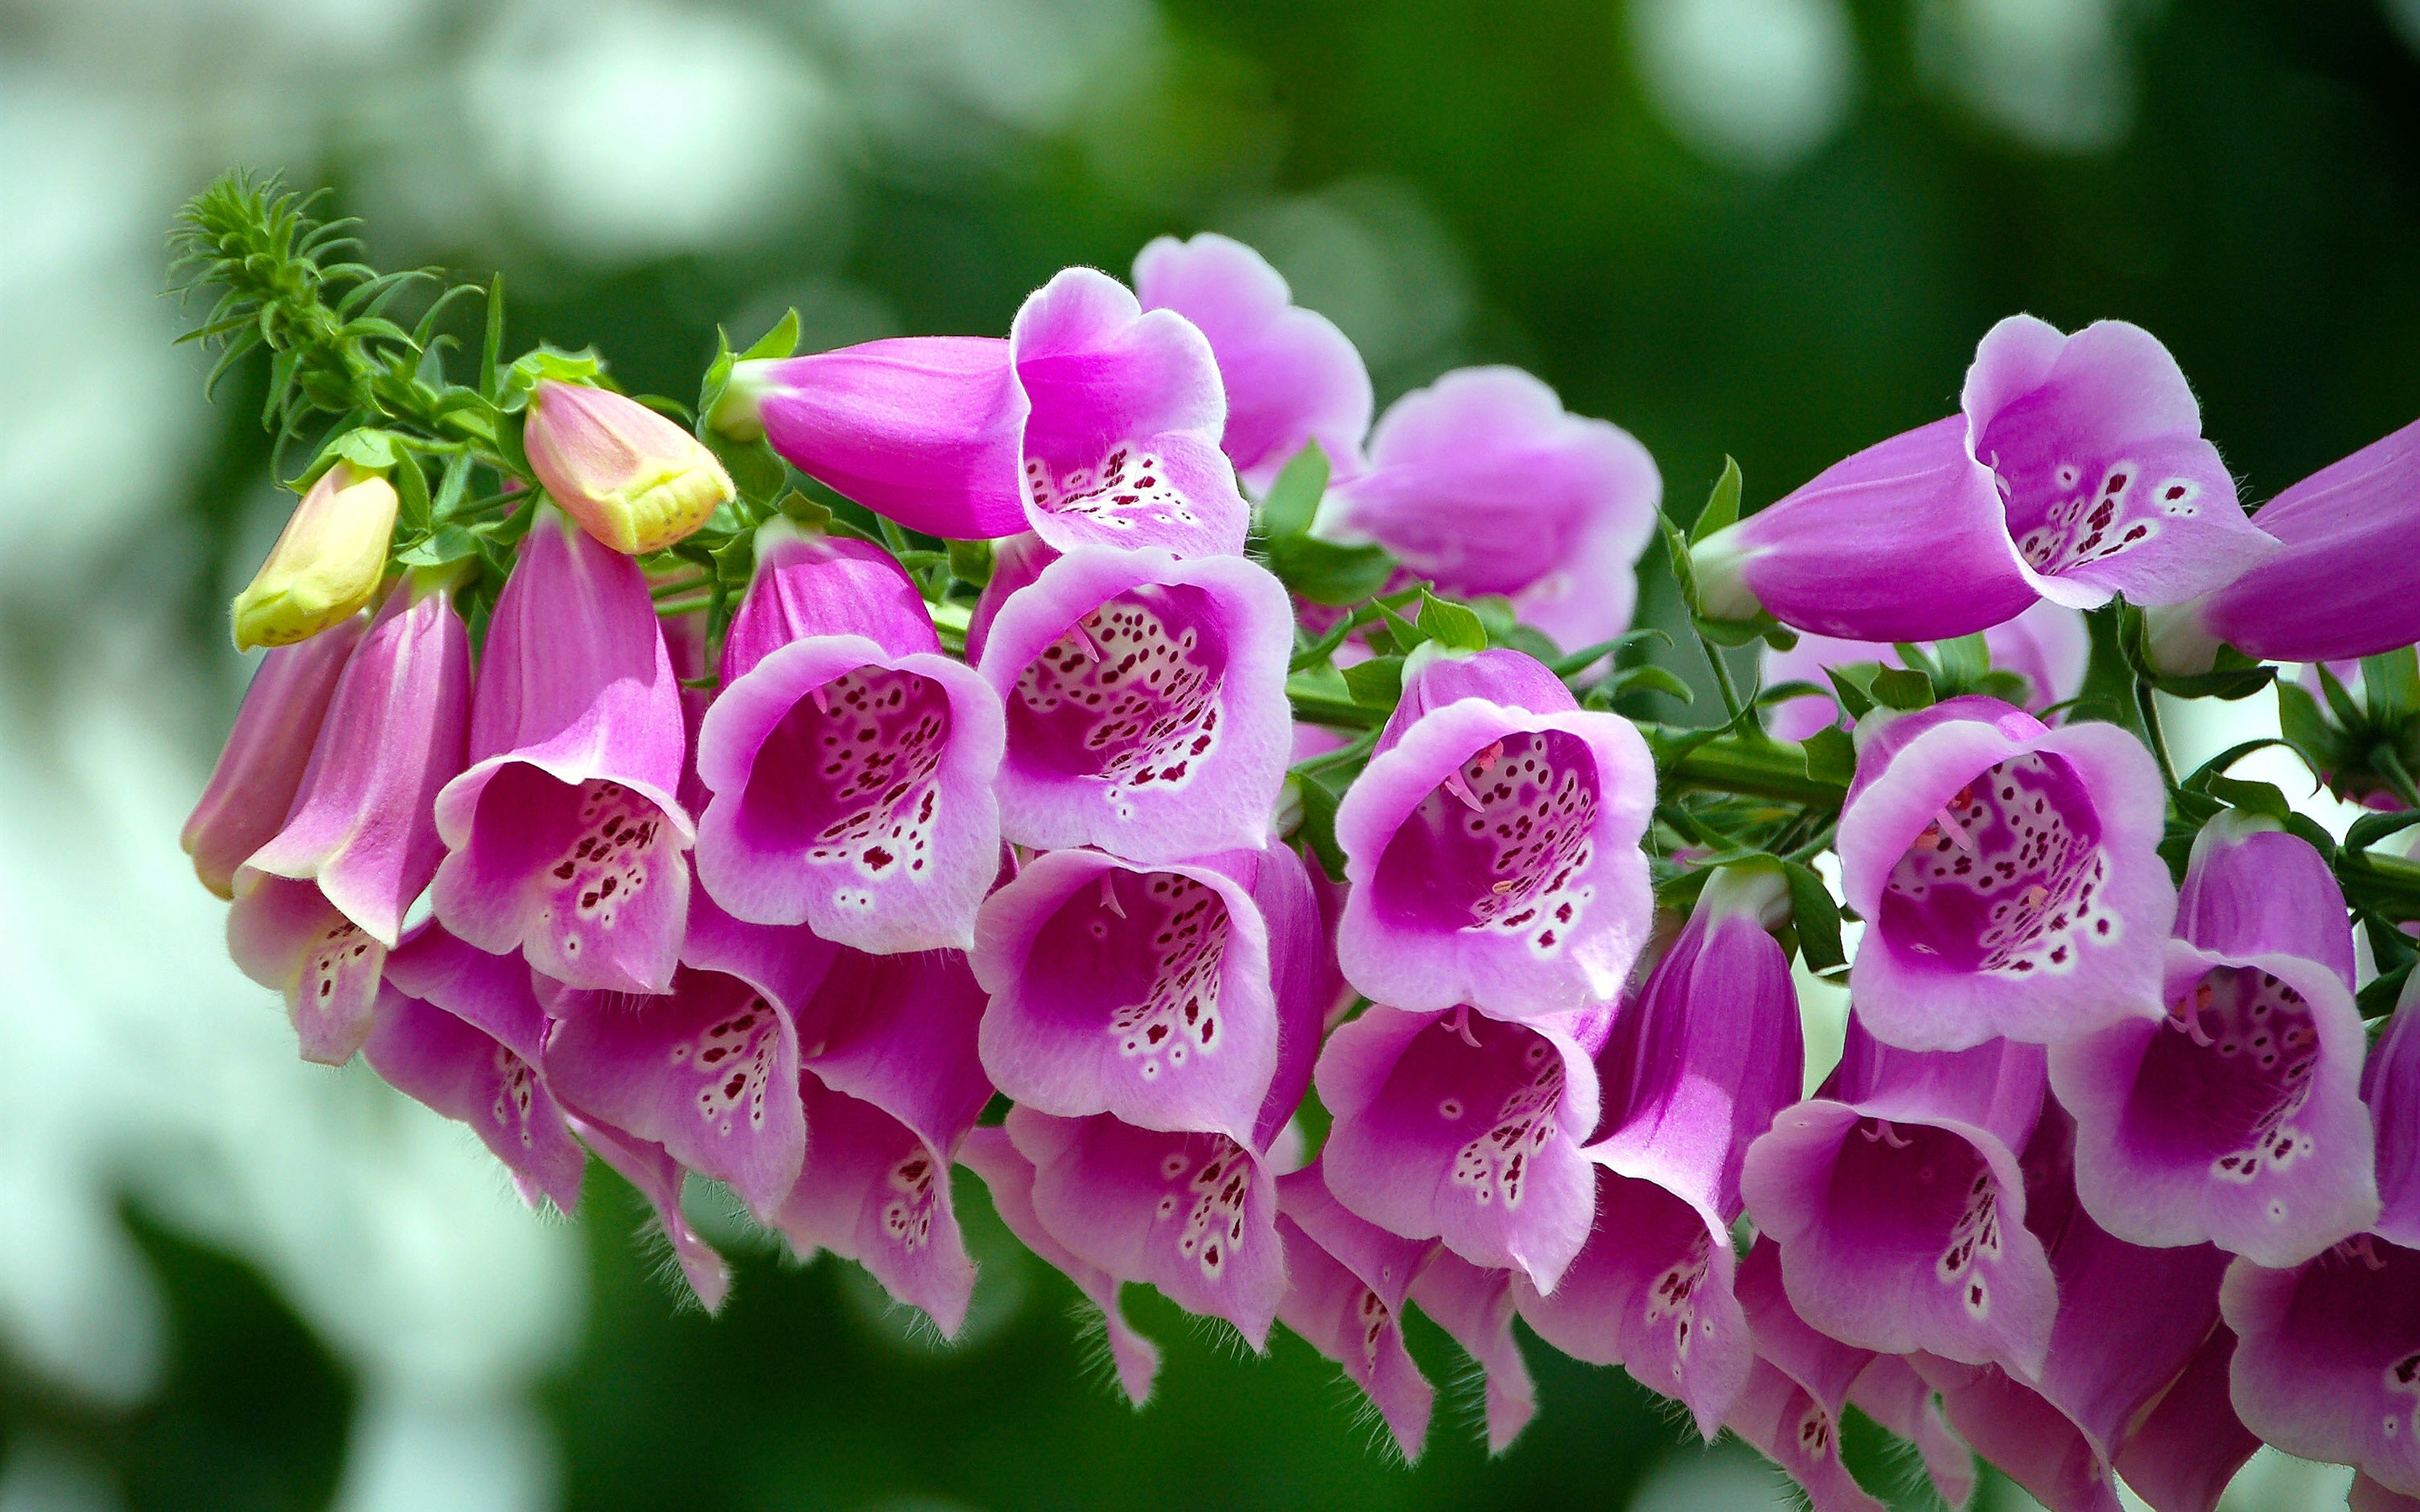 Wallpaper Beautiful Pink Bells Flowers 2880x1800 Hd Picture Image